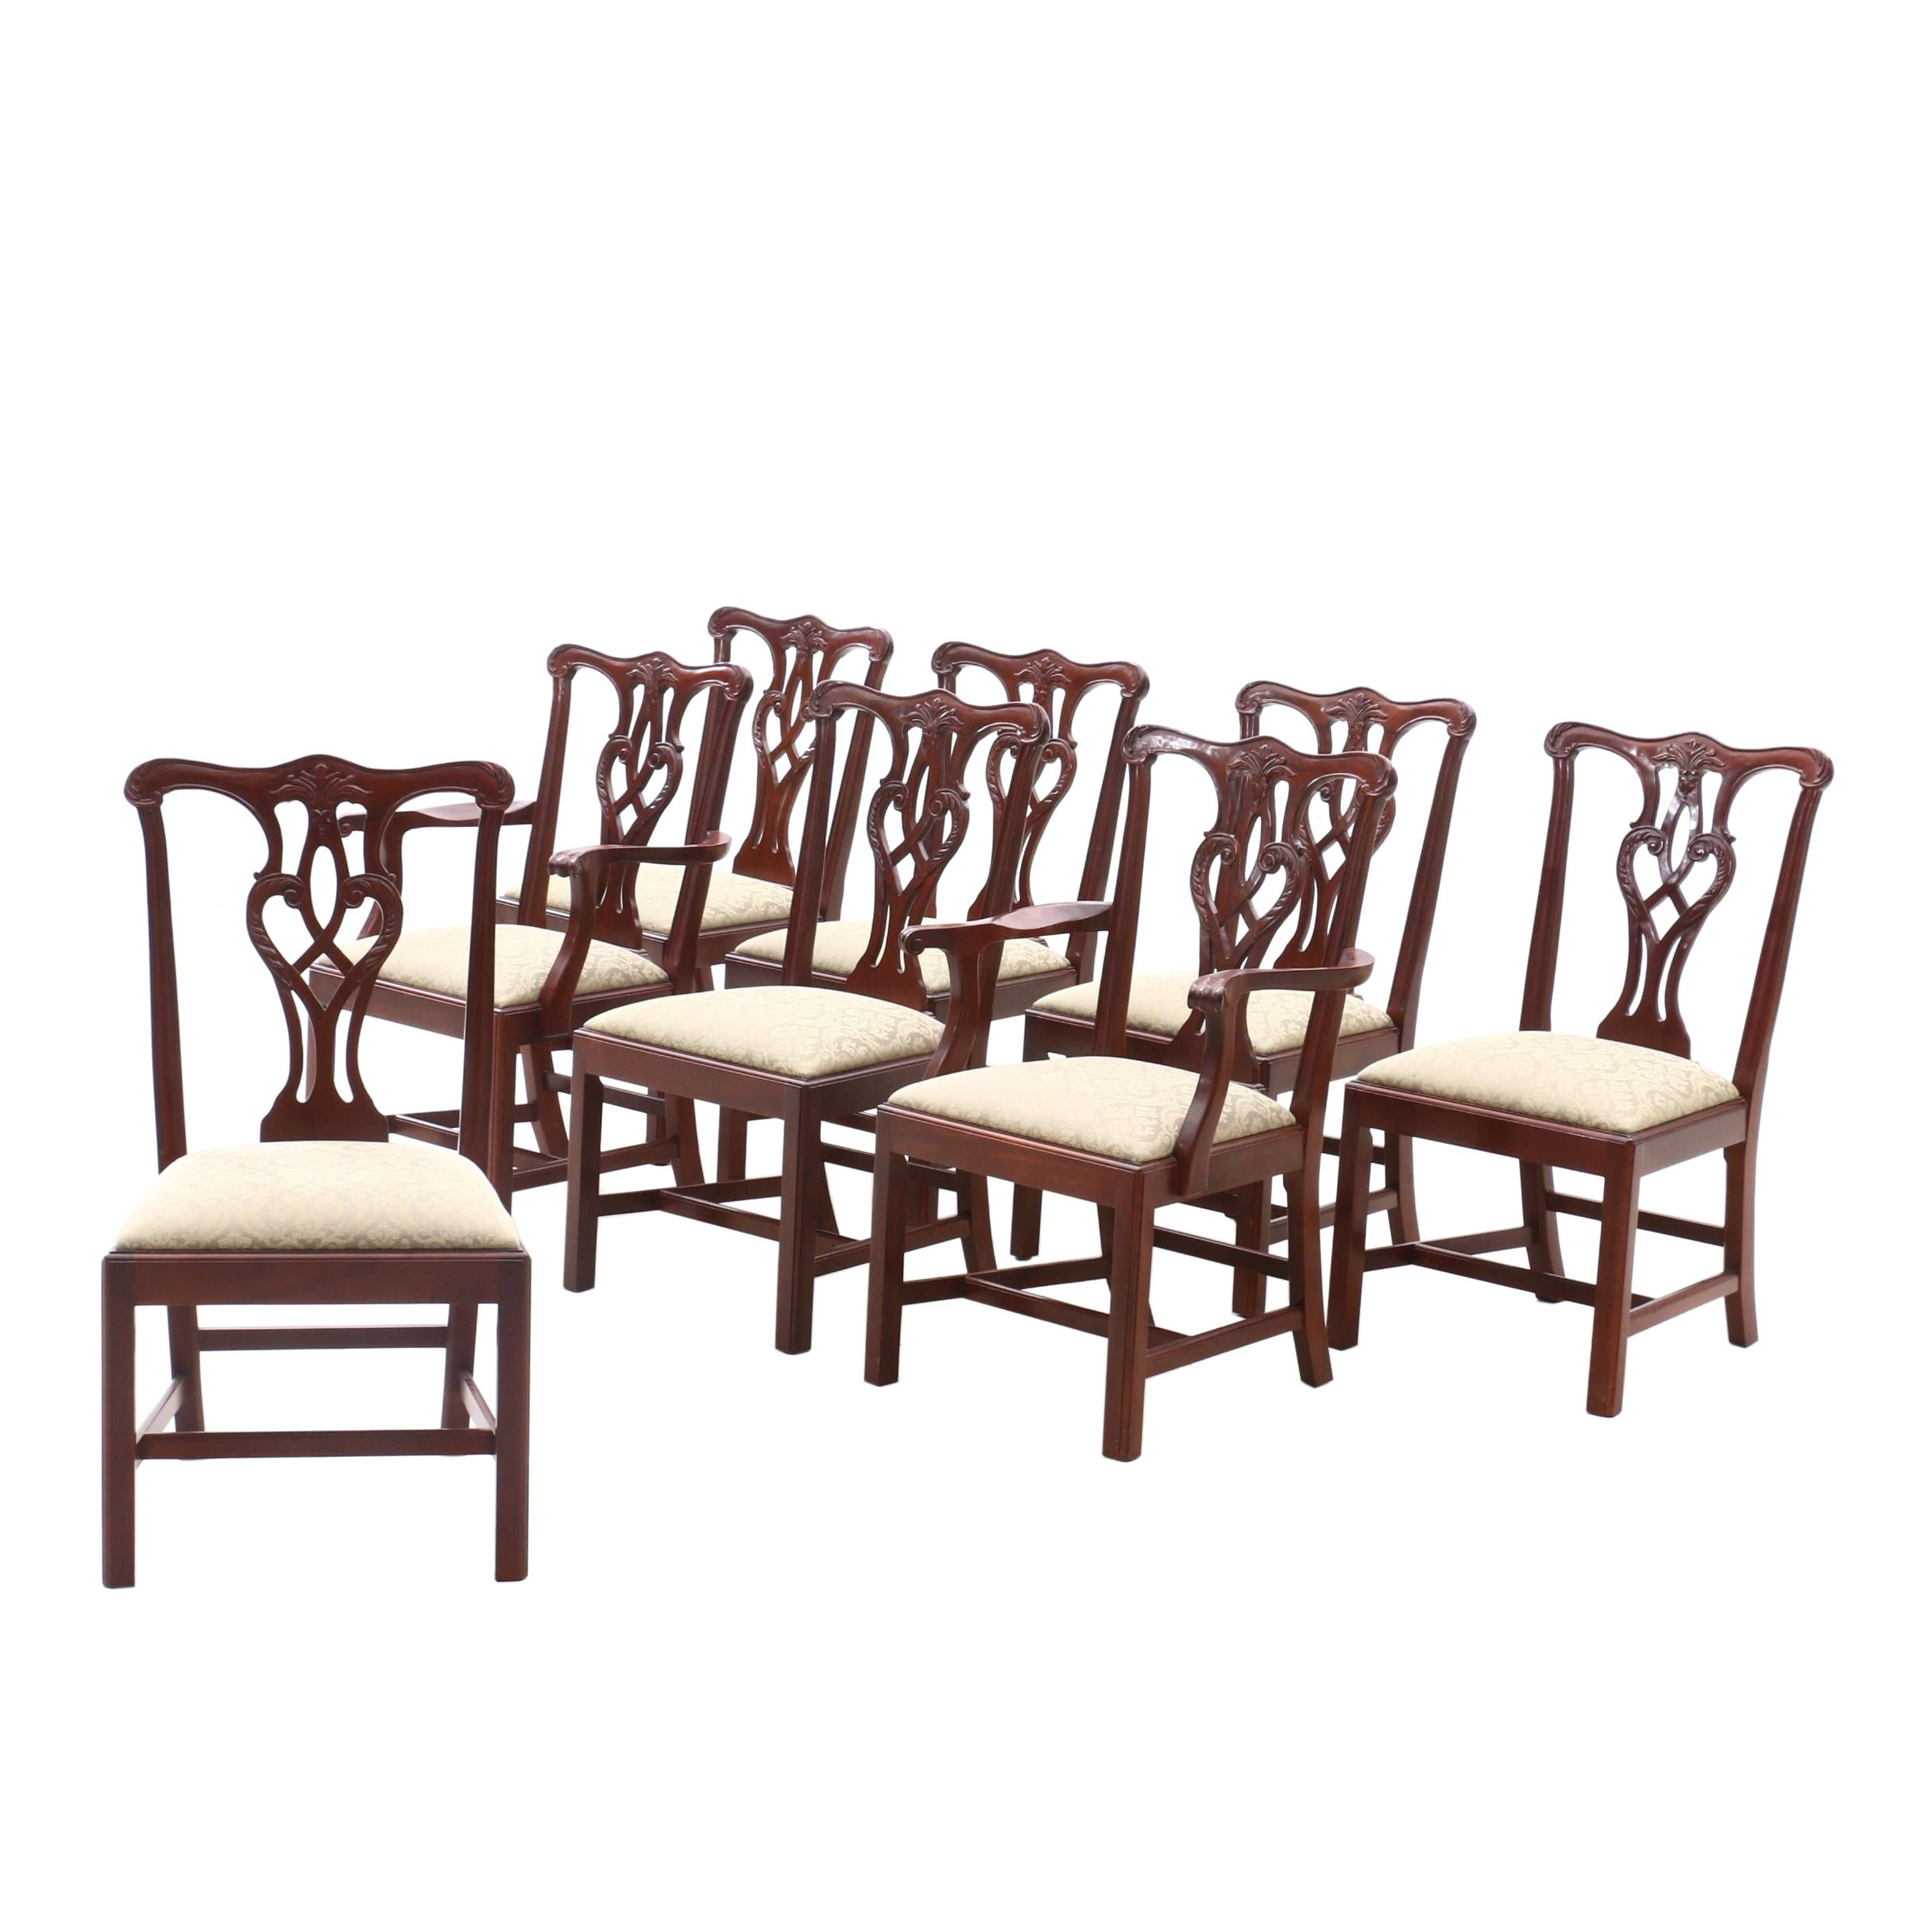 Chippendale Style Mahogany Dining Chairs by Craftique, Contemporary